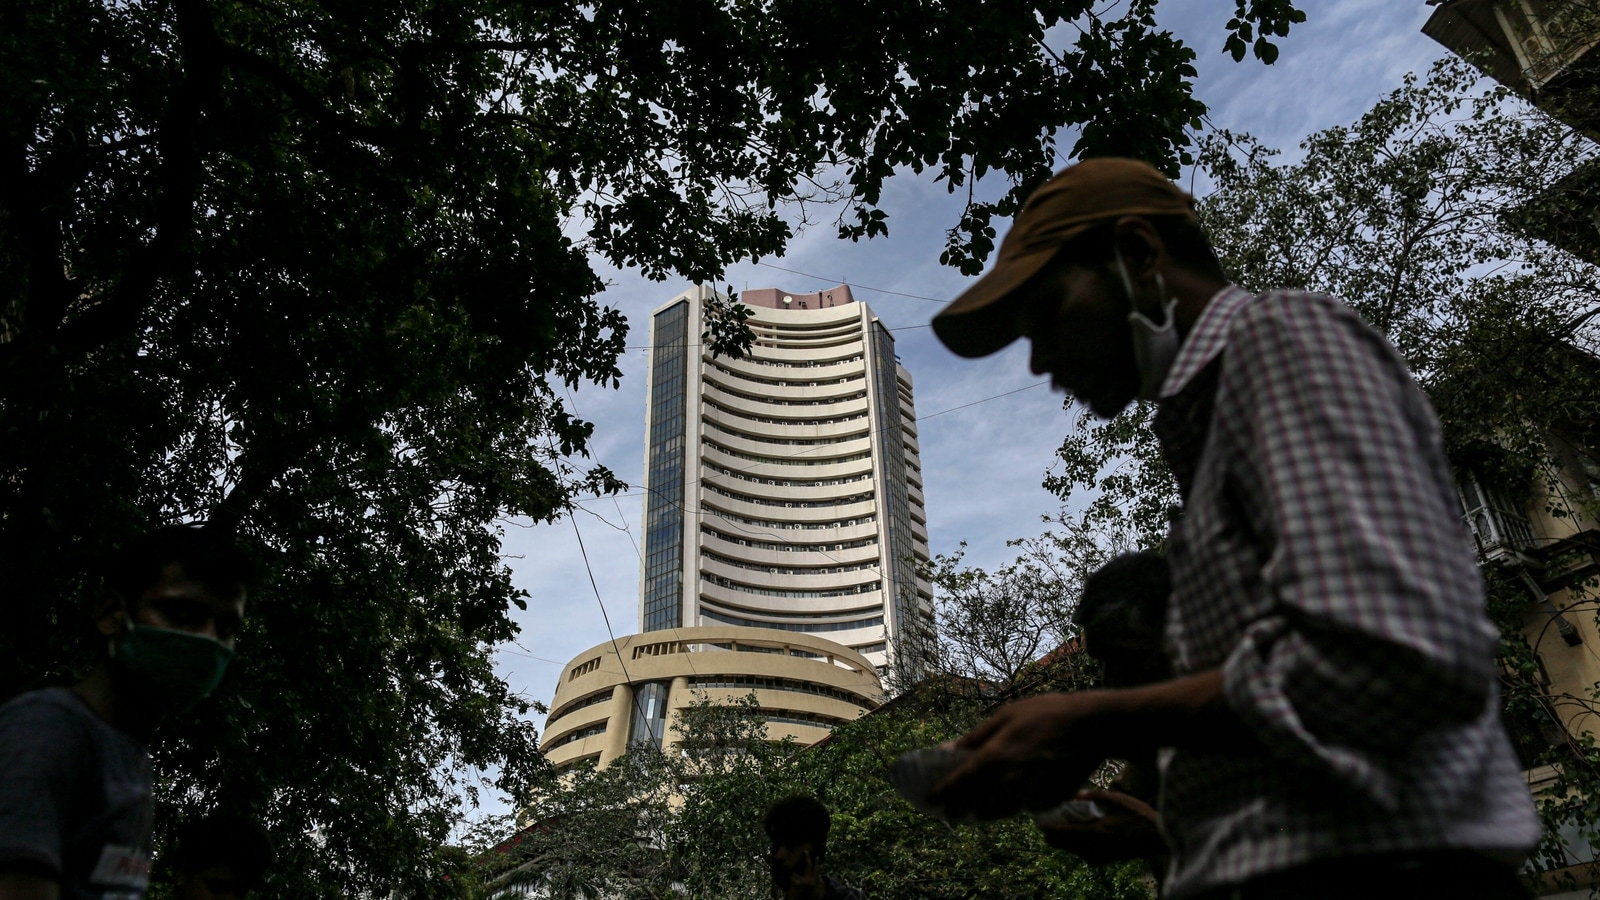 Sensex down 179 points at 52,323; Nifty ends day 76 points in red at 15,691 thumbnail